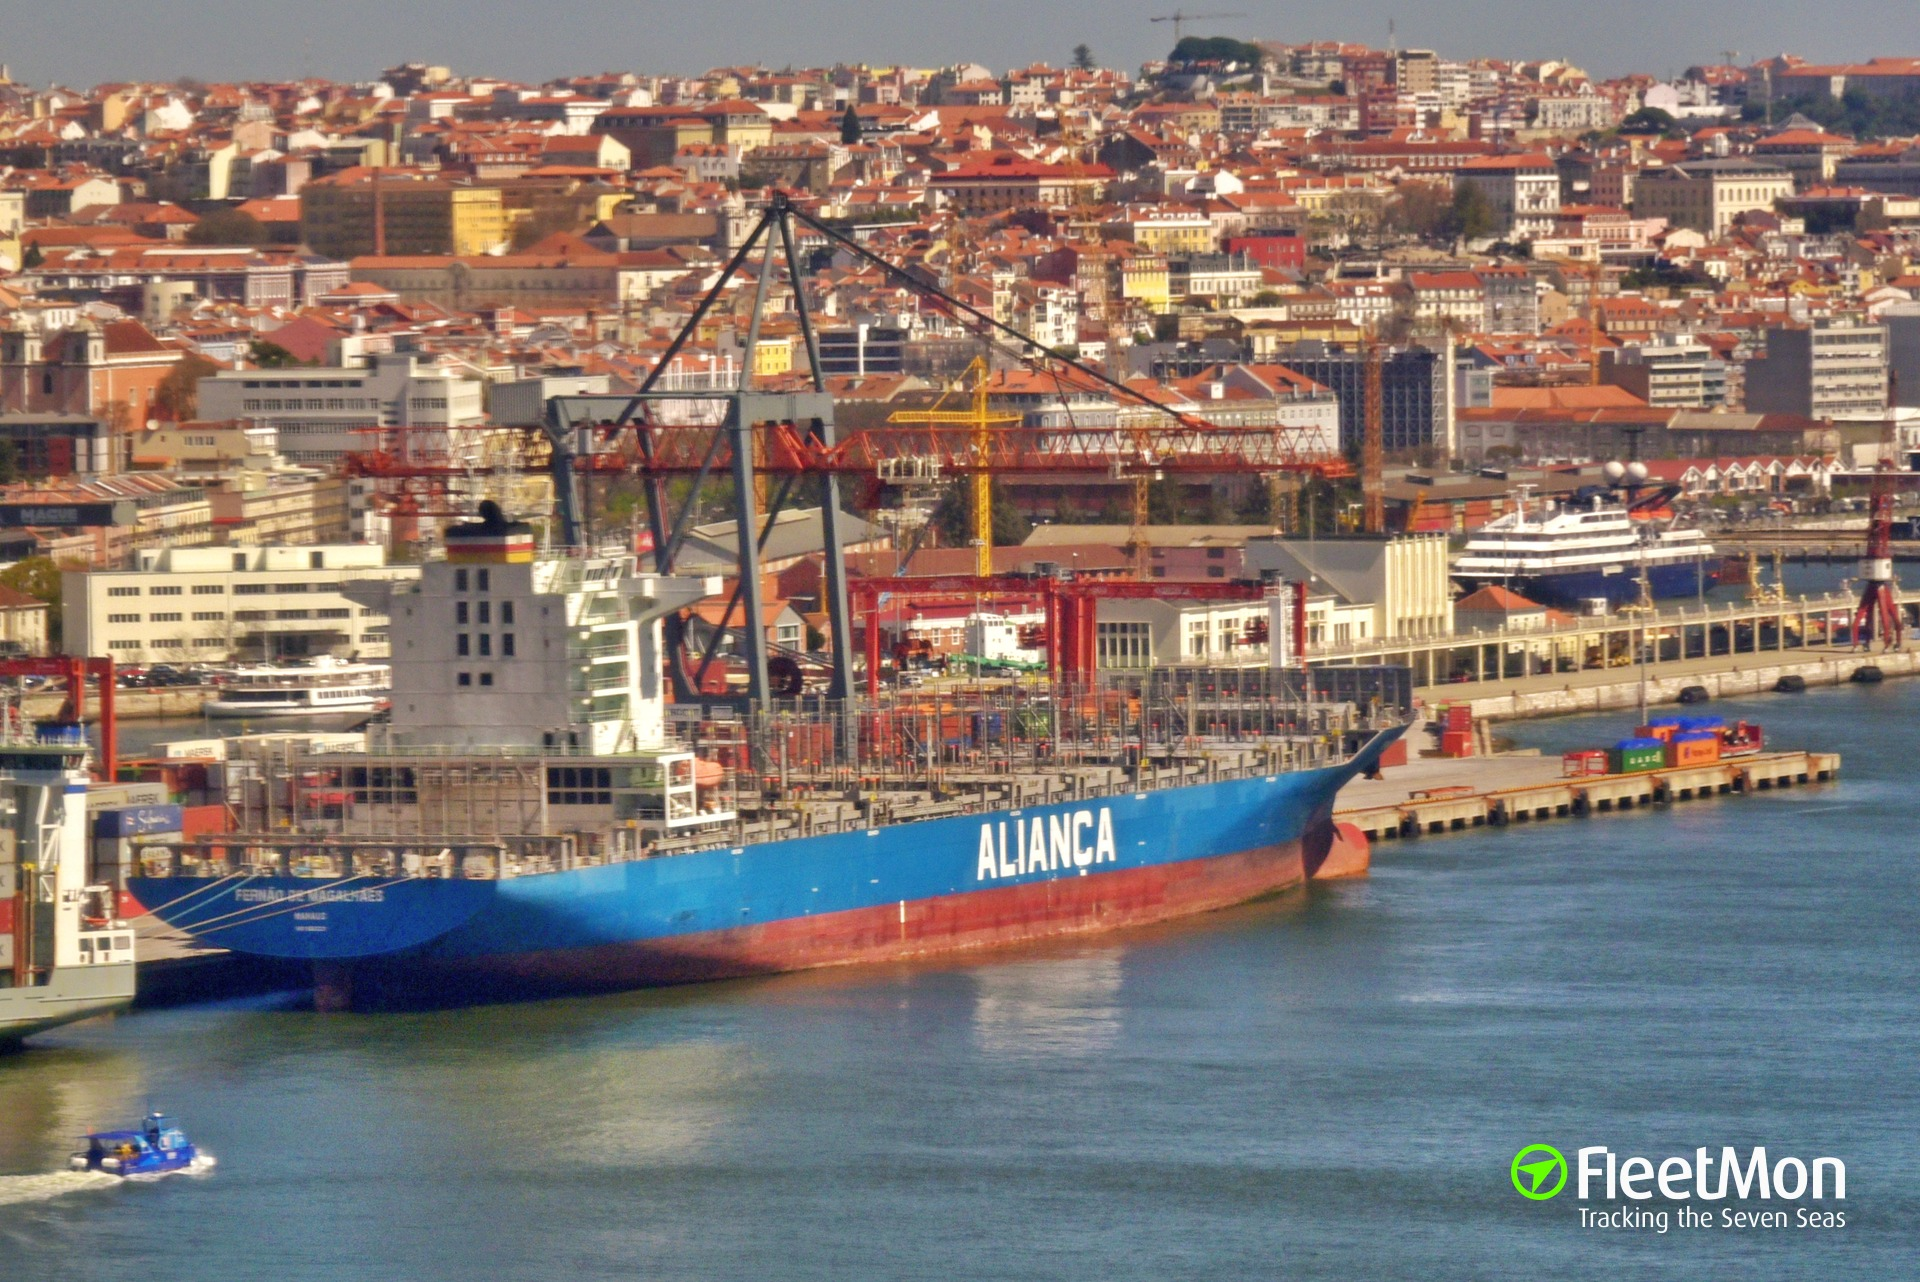 FERNAO DE MAGALHAES (3,820 teu) enters service